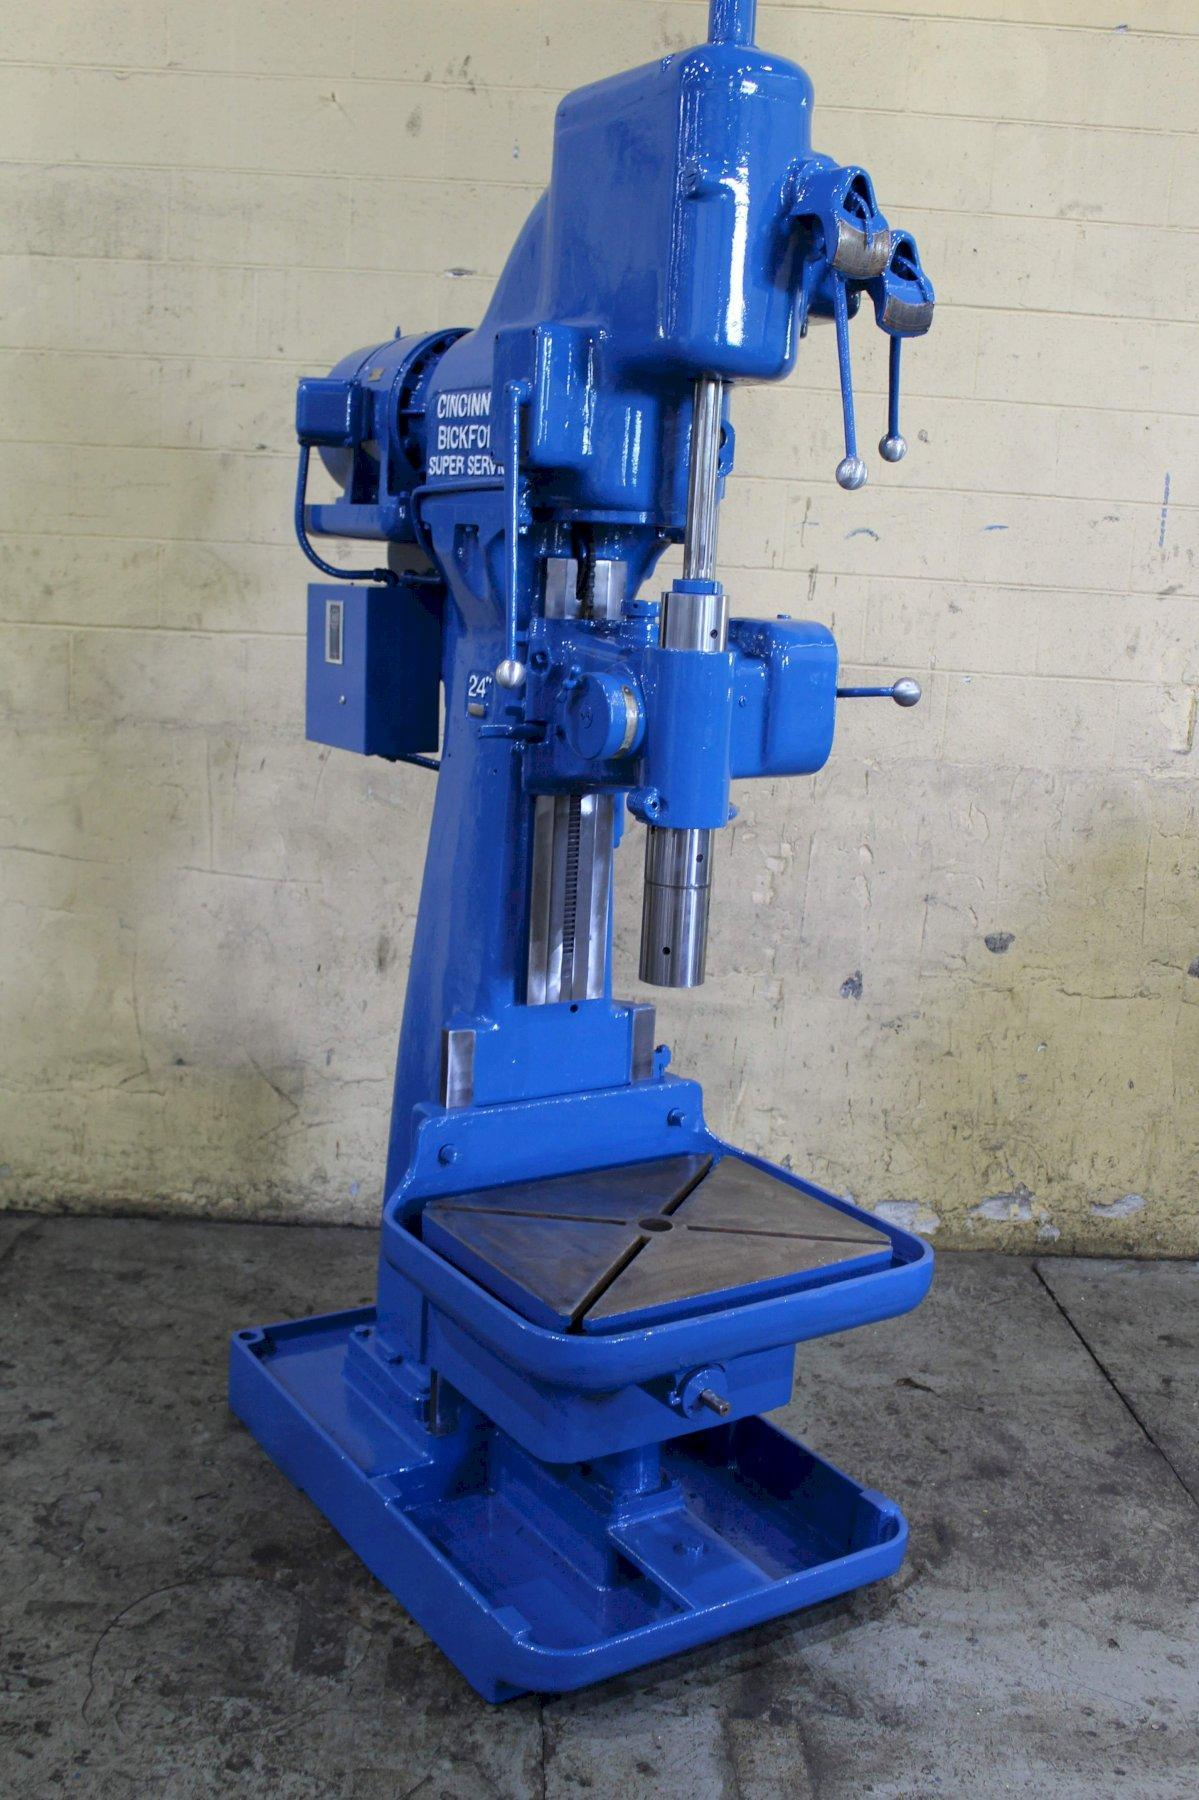 24' CINCINNATI SINGLE SPINDLE DRILL: STOCK #71875